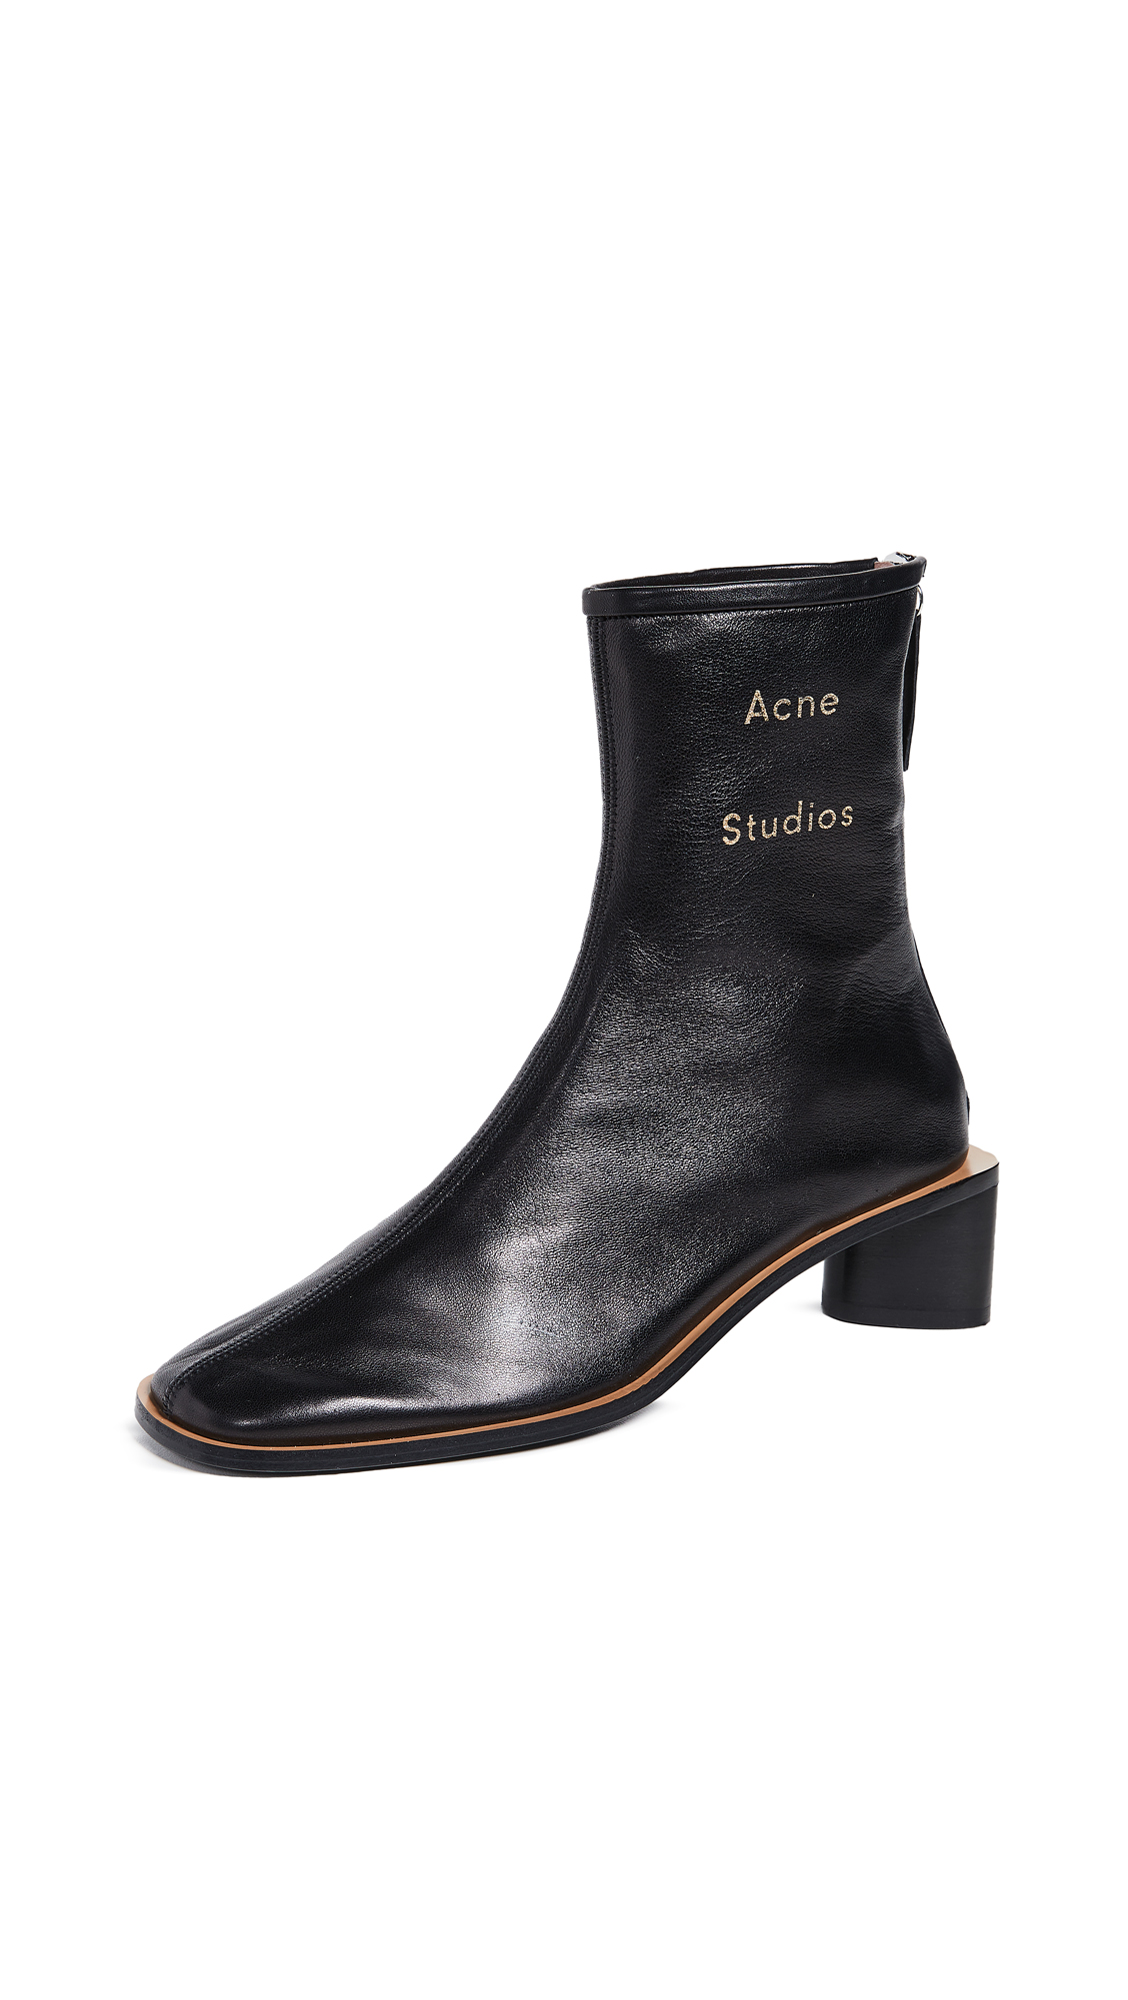 Acne Studios Bertine Booties - Black/Black